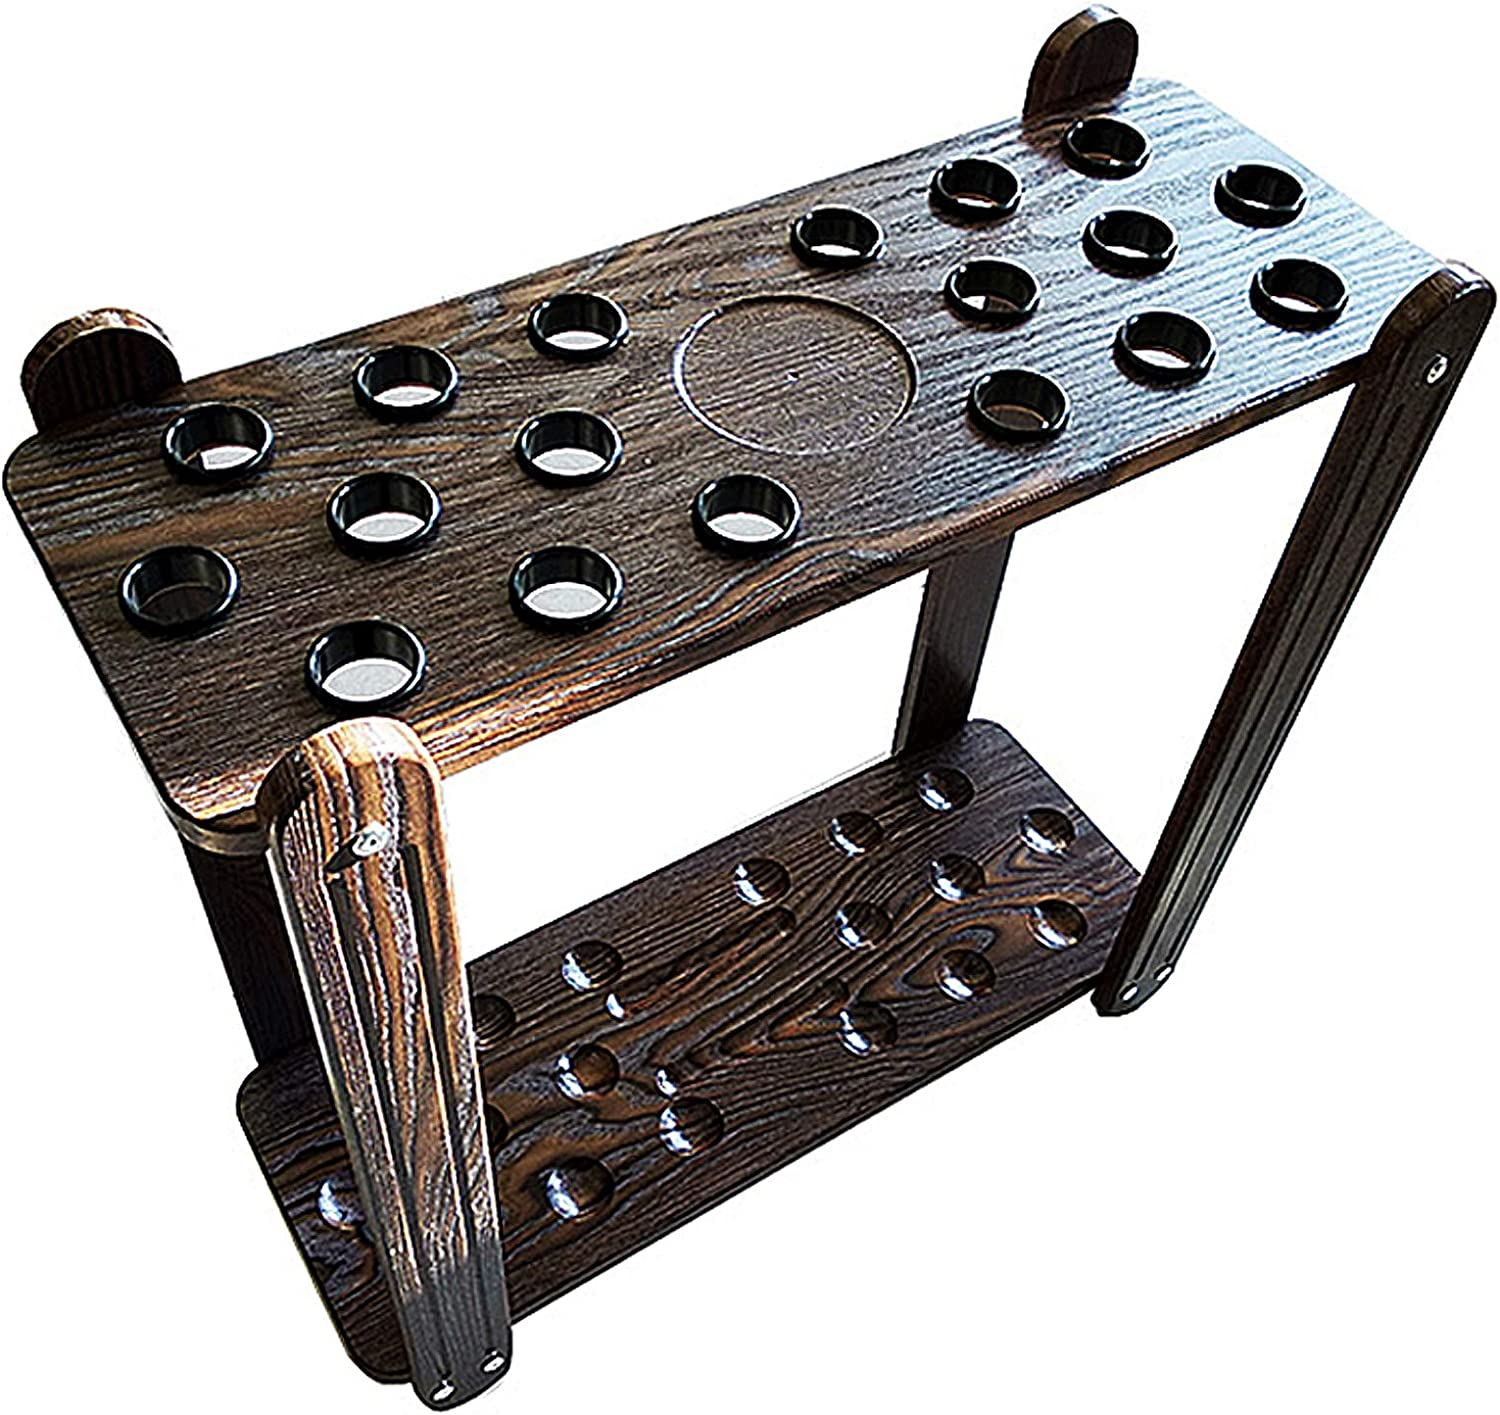 L-KCBTY Solid Wood Rack Holder - Ass Accessories Easy Our shop Max 89% OFF most popular to Snooker